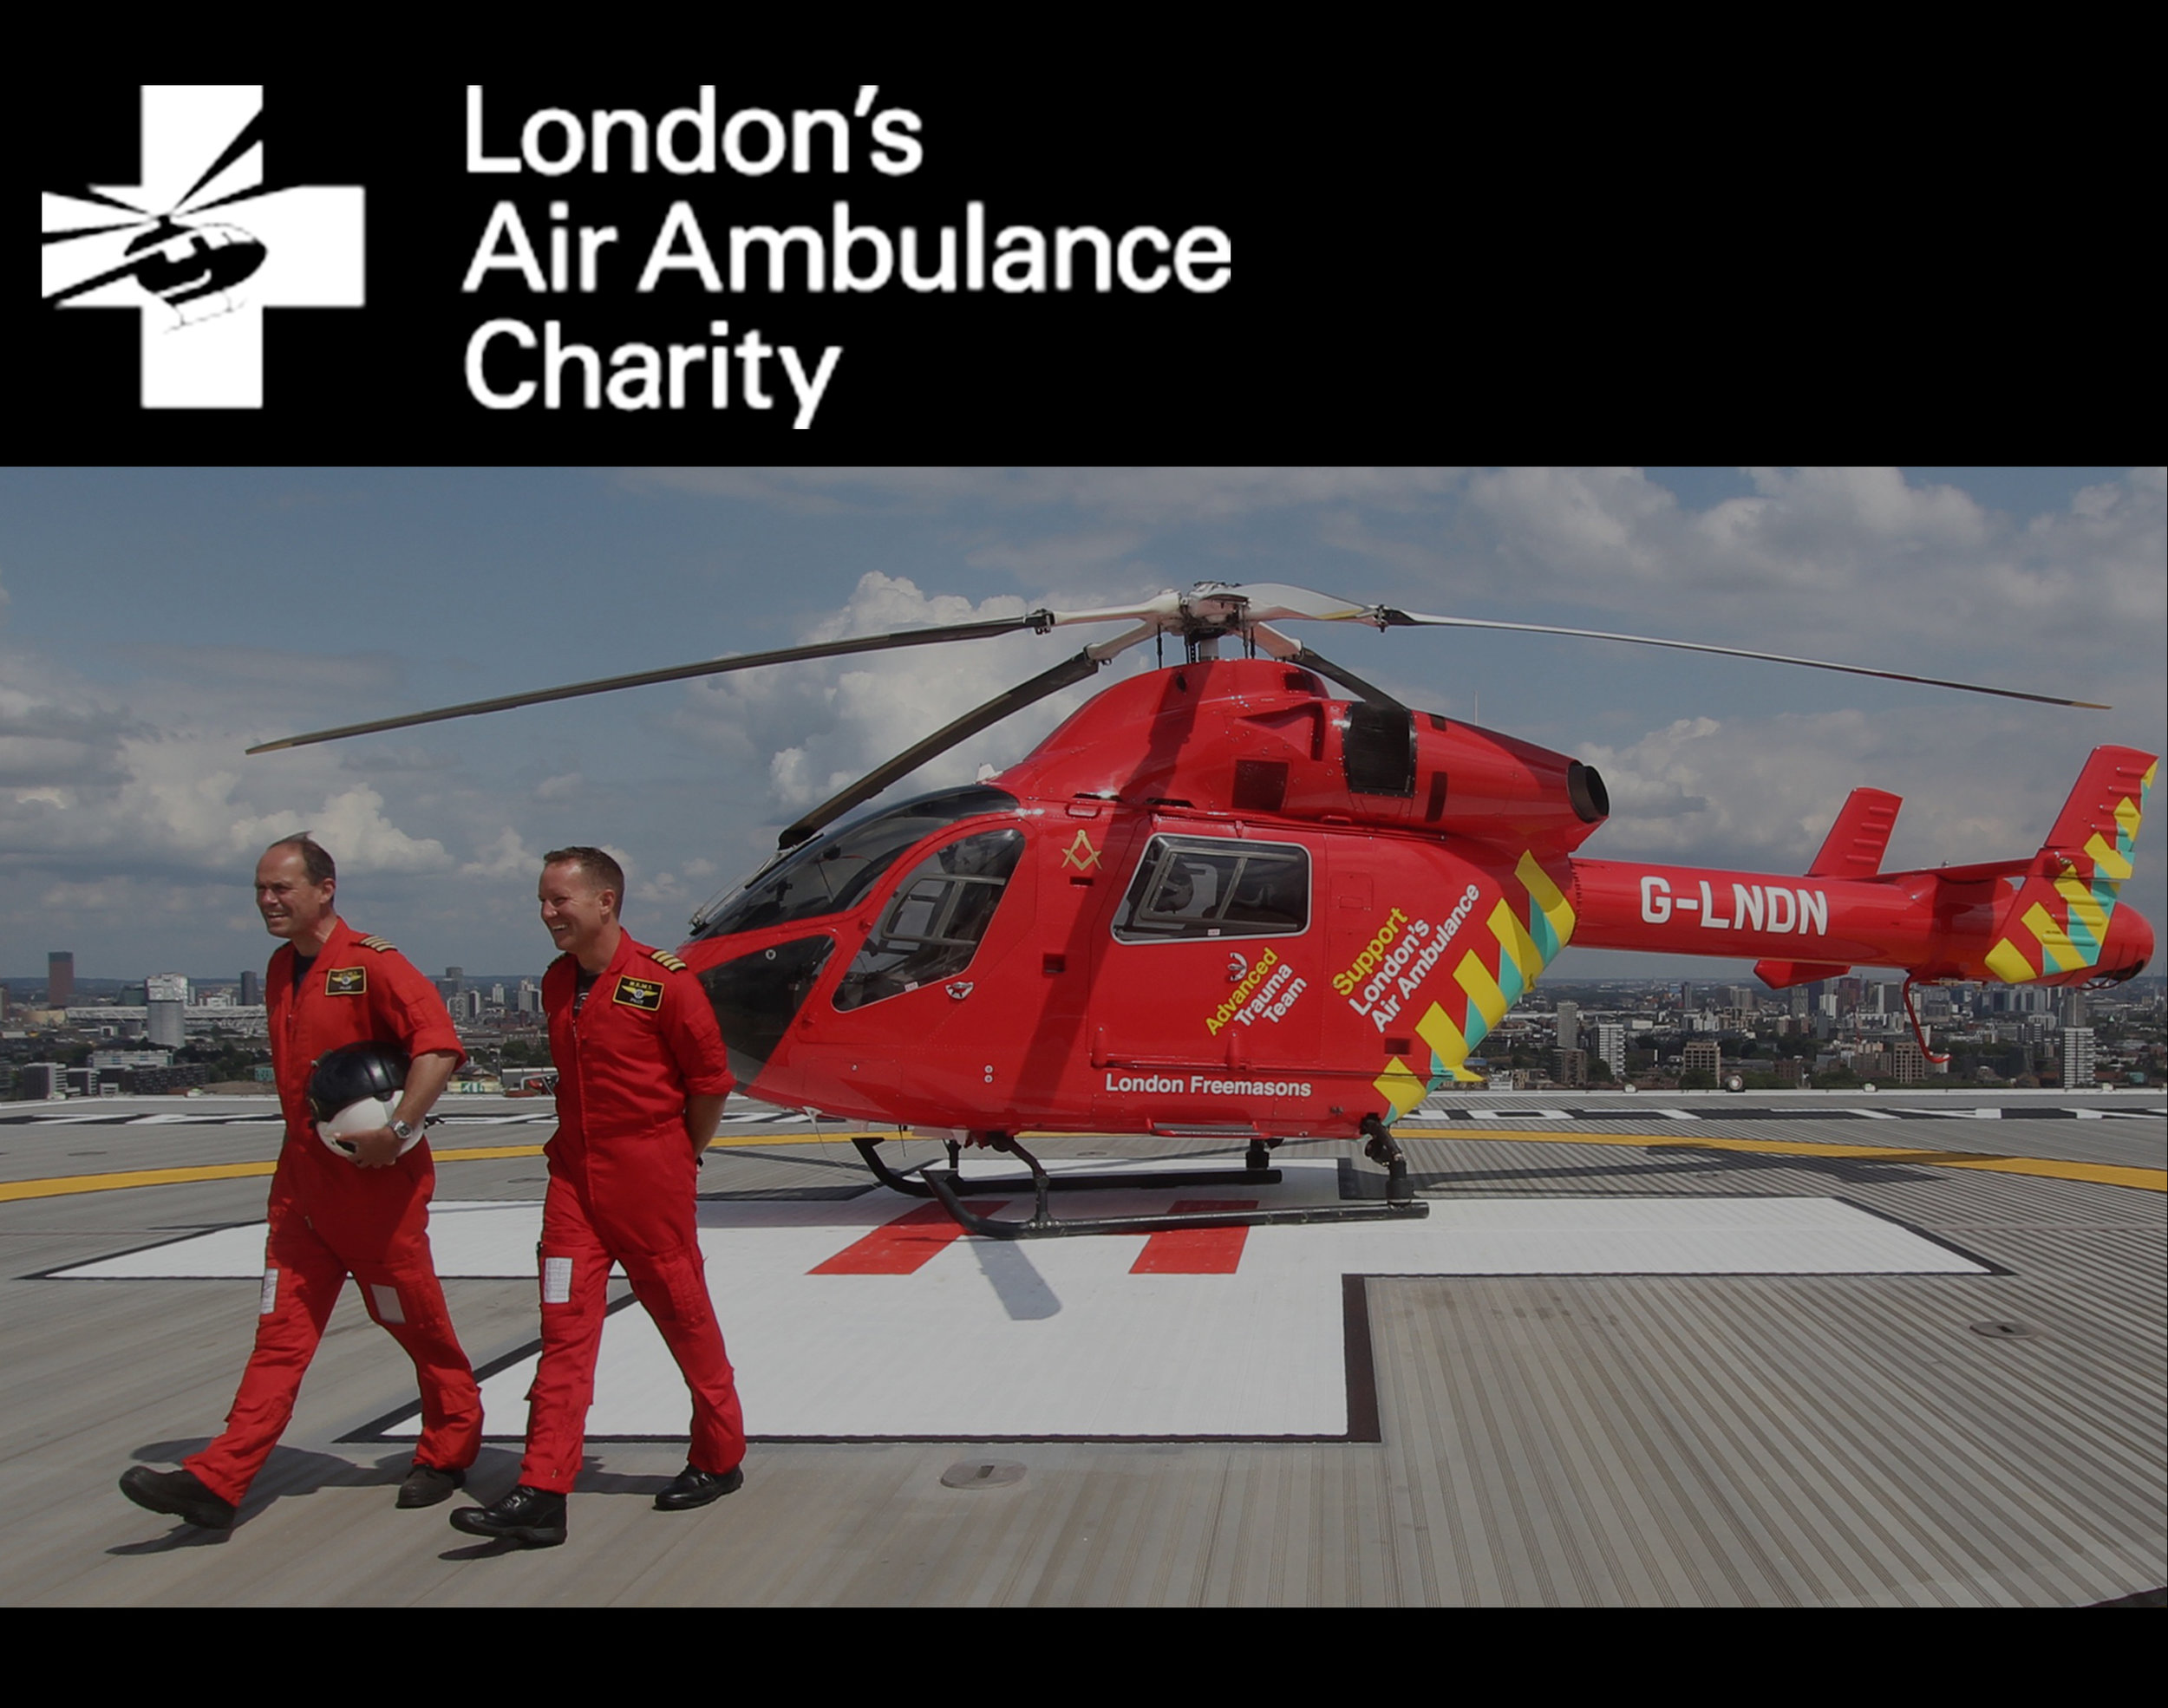 This year we are proud to be raising money for London's Air Ambulance Charity. Please click on the image above for more information about the charity and to donate.